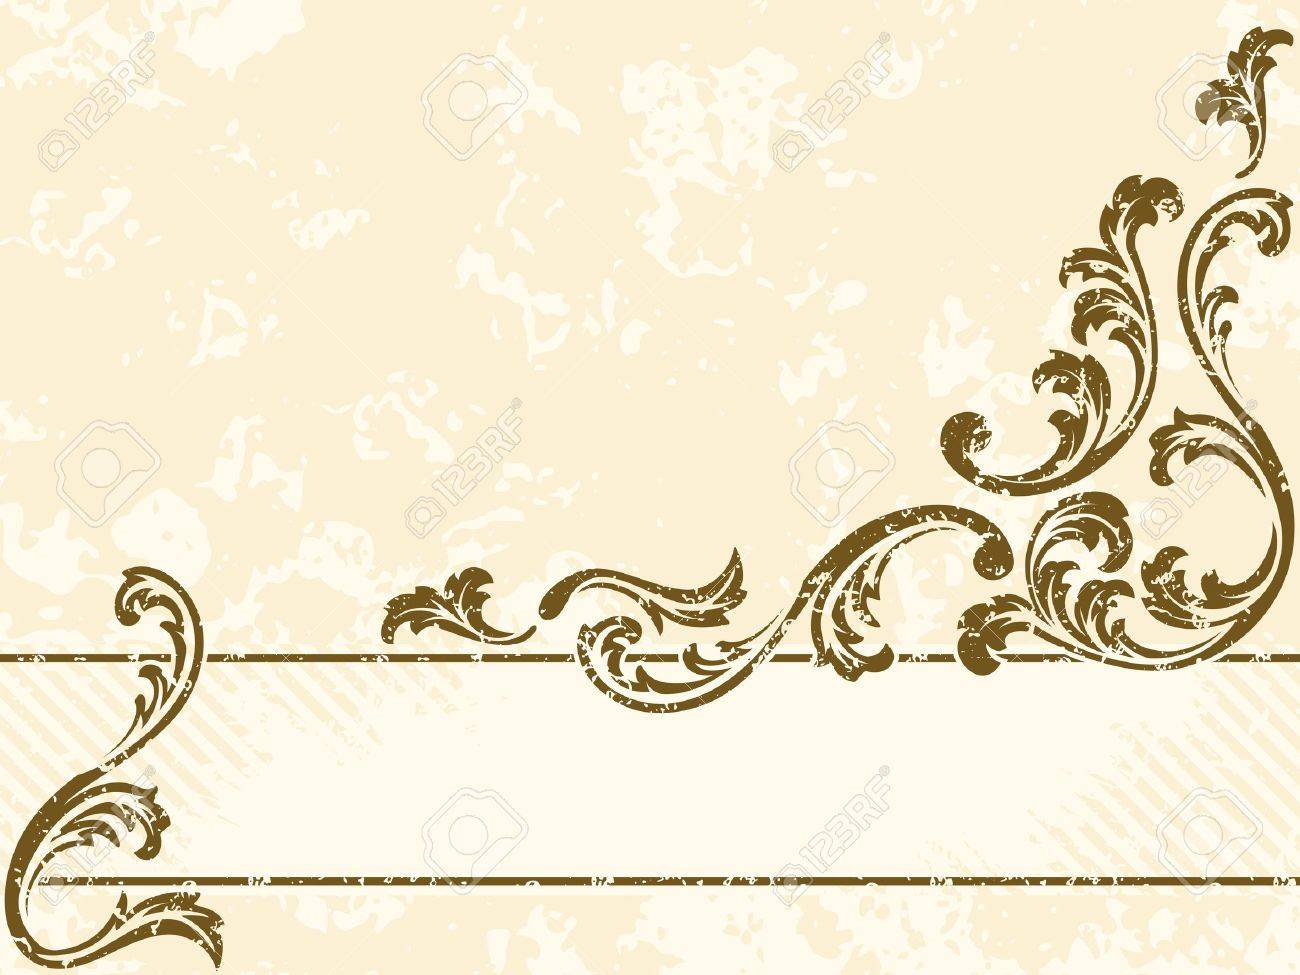 horizontal grungy sepia tone banner inspired by victorian era